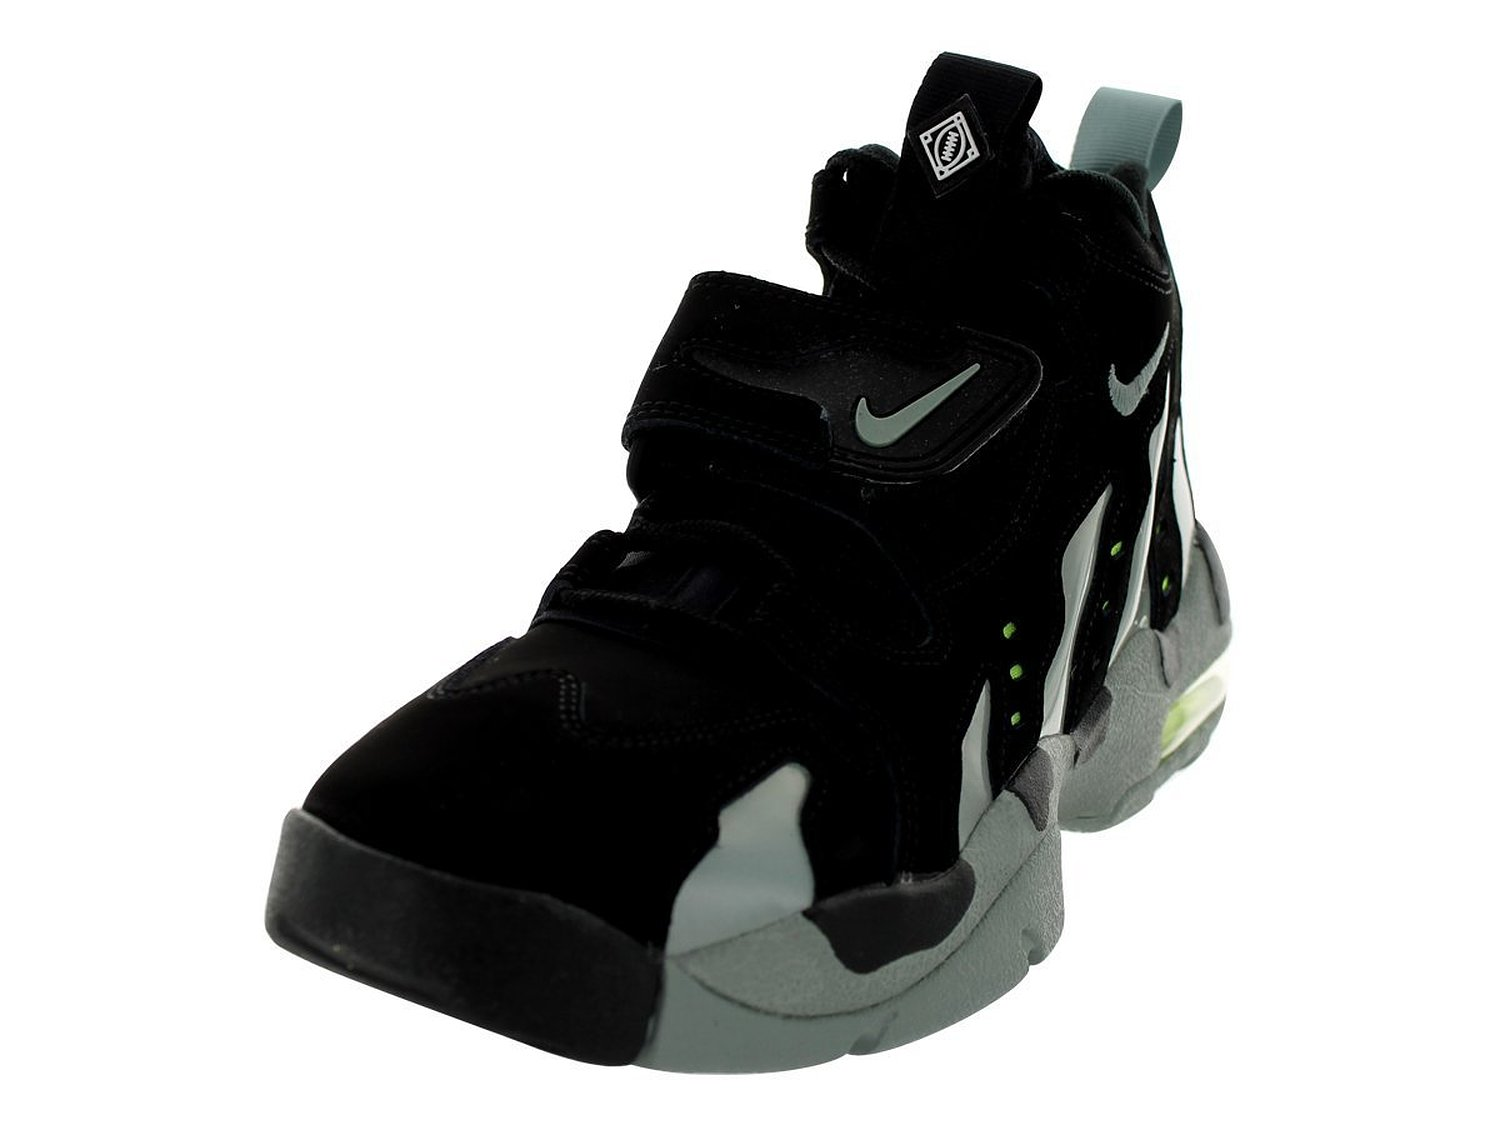 0457773350 Cheap Nike Air Dt Max 96, find Nike Air Dt Max 96 deals on line at ...